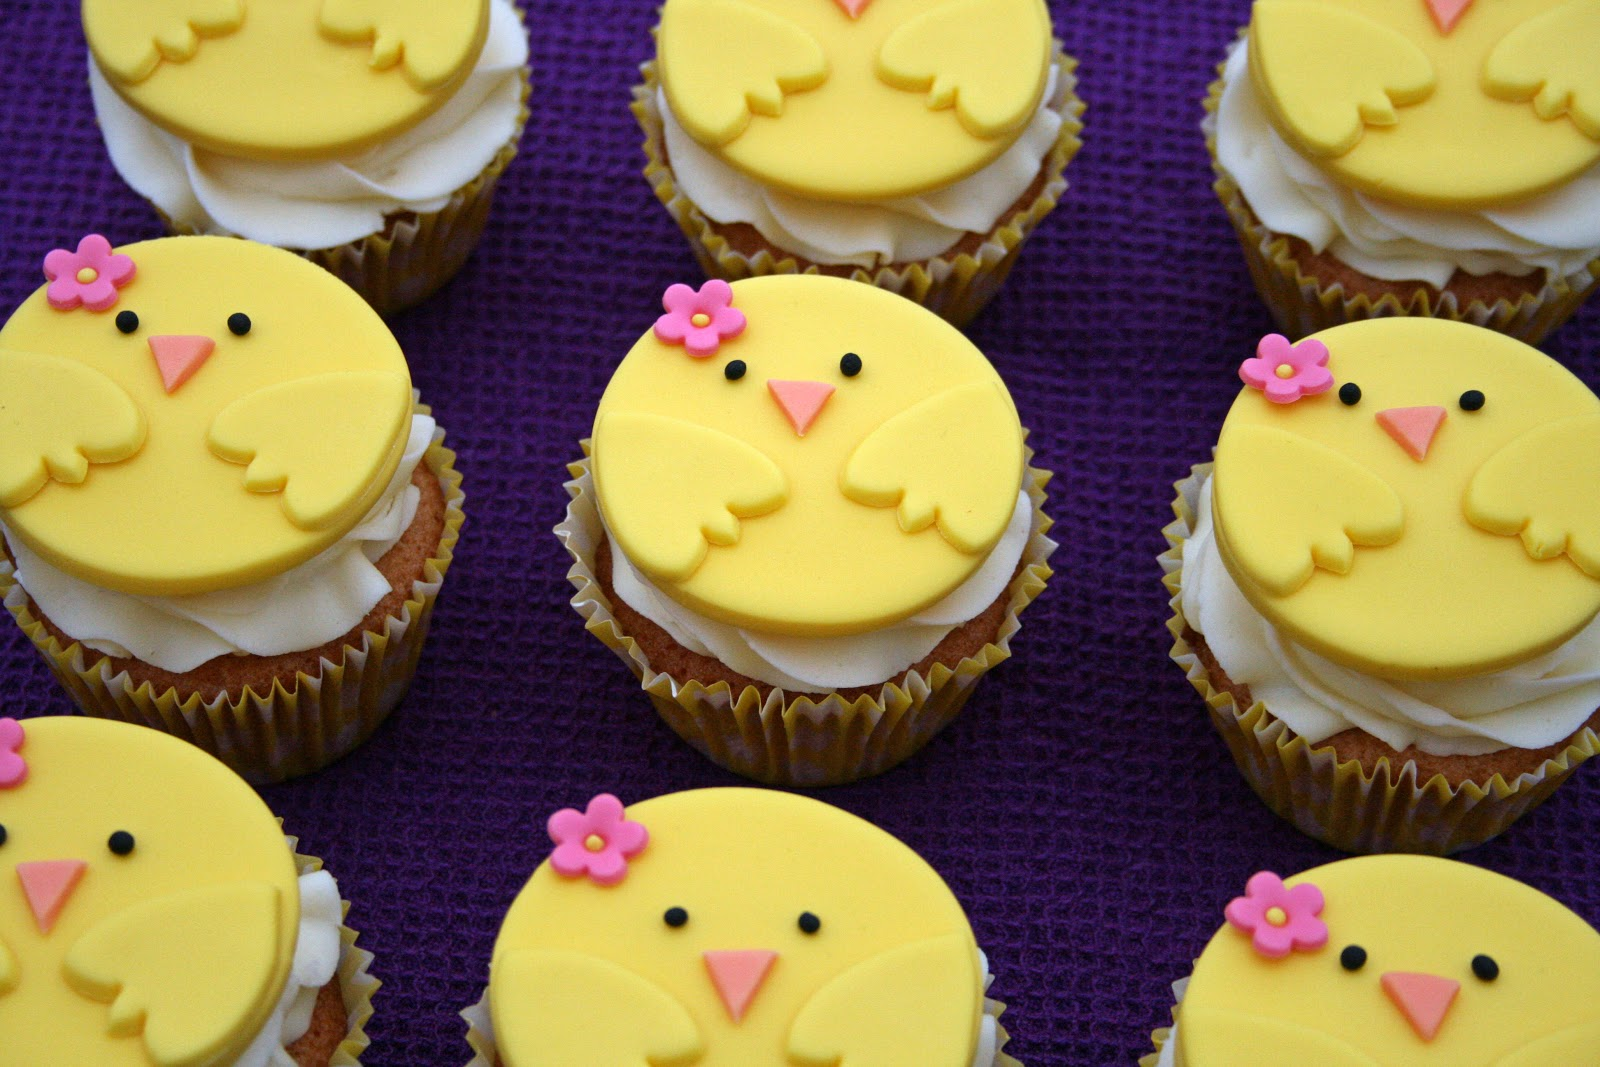 Easter Cakes Make Children